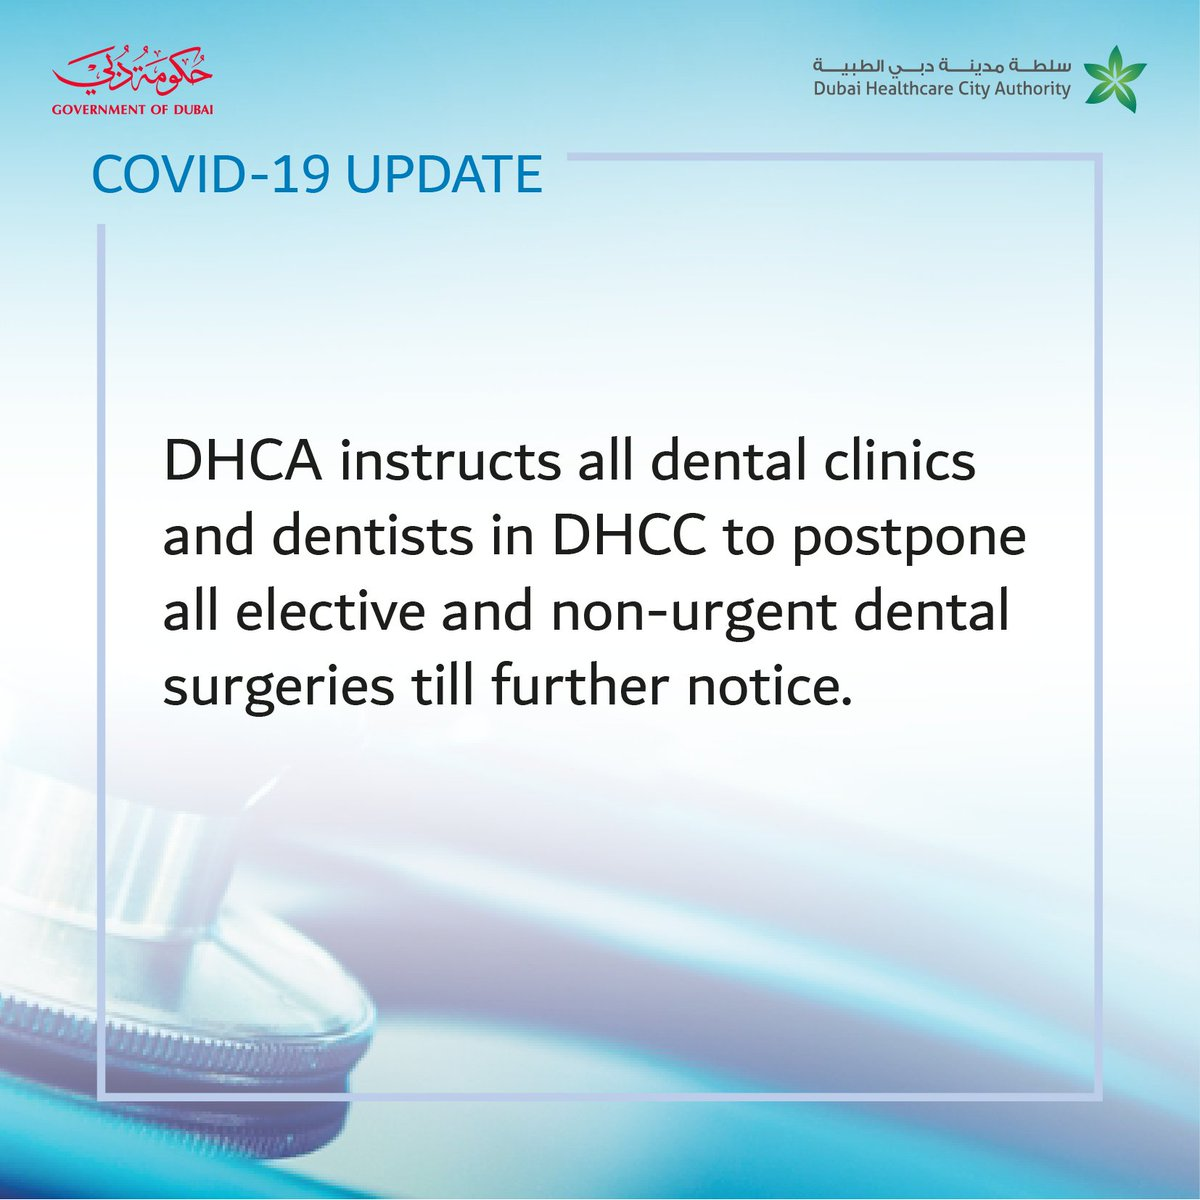 As part of the national efforts to combat the COVID-19 pandemic, DHCA has introduced new interim guidelines for dental clinics. For full update go to our dedicated COVID-19 webpage. click link: https://tinyurl.com/sob6ctg .  #DHCC #covid_19 #corona #Communityofchoice #stayinformedpic.twitter.com/Uqv3XOWHEK